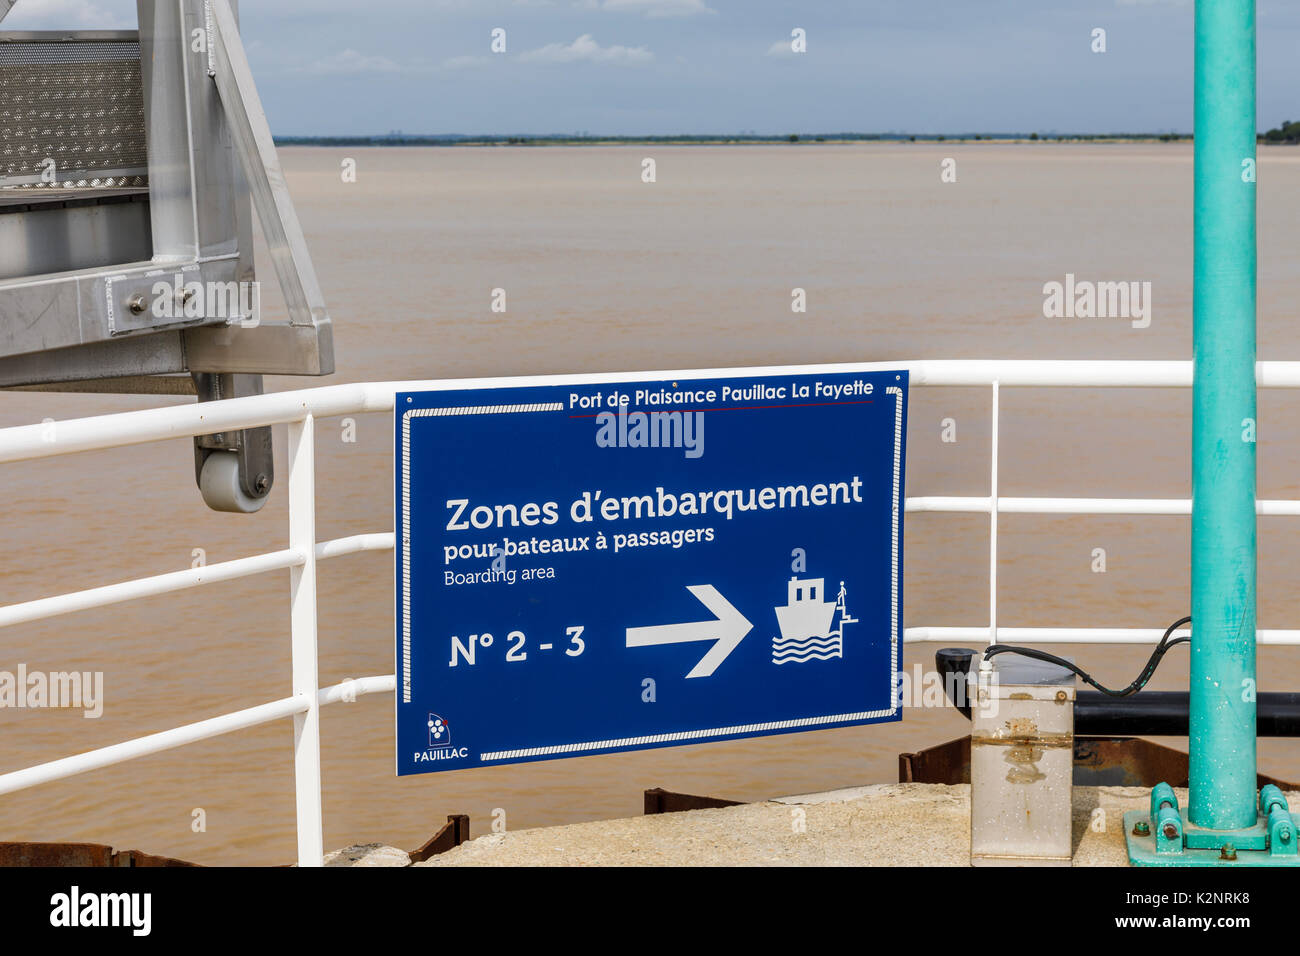 Direction sign for embarkation of passengers, marina at Pauillac, a municipality in the Gironde department in Nouvelle-Aquitaine, southwestern France - Stock Image